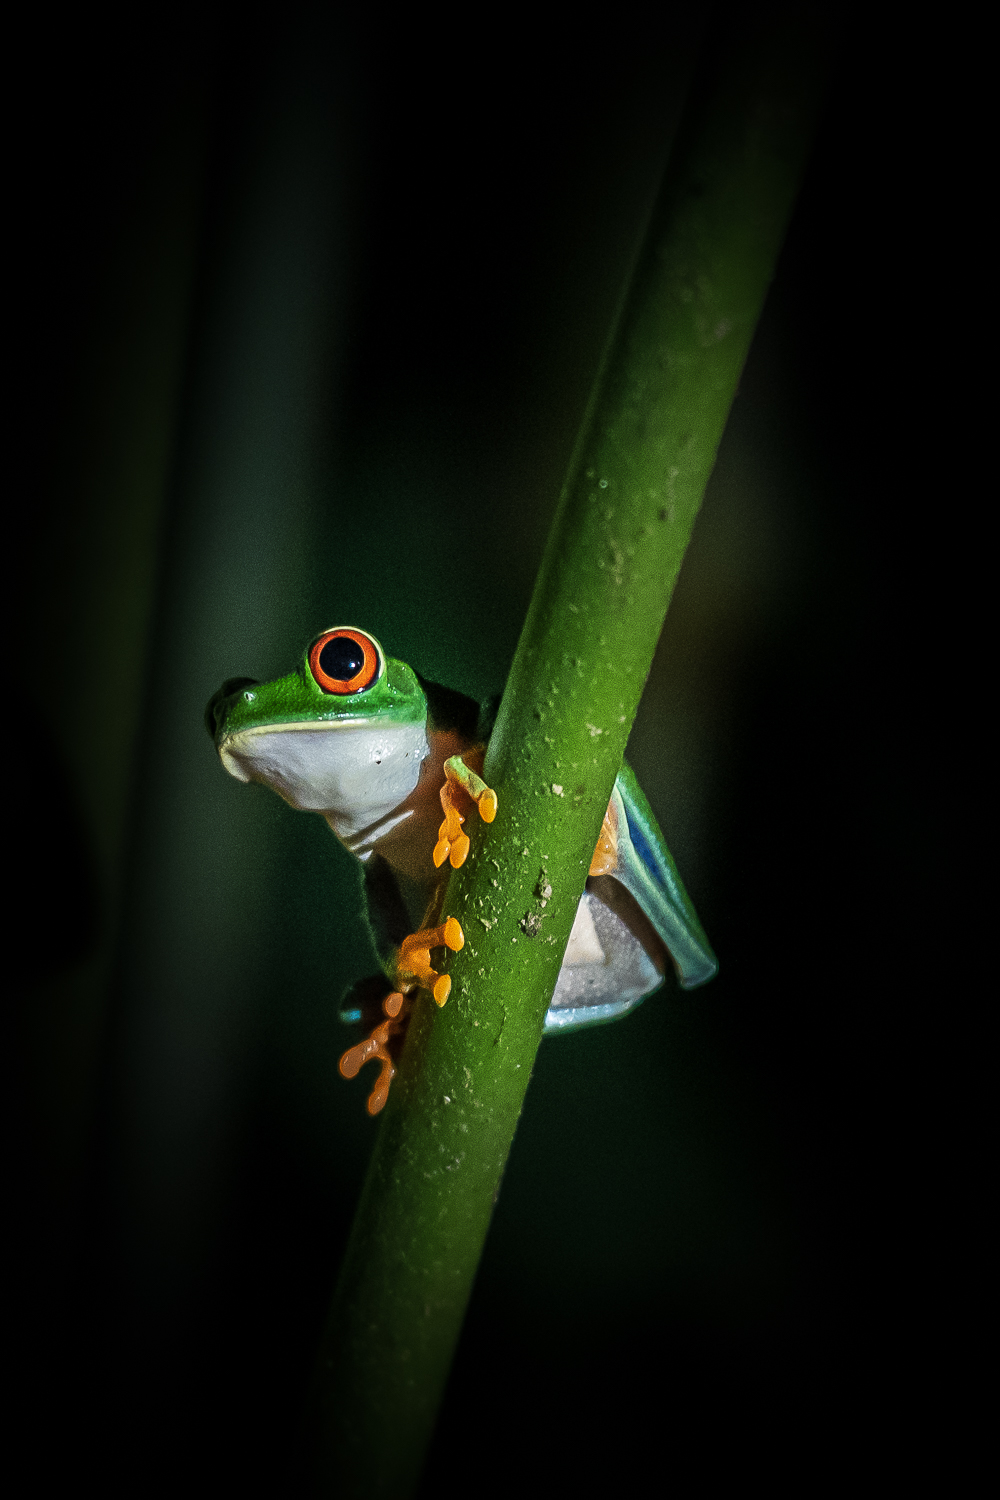 Red-Eyed Tree Frog, clinging to a plant stalk